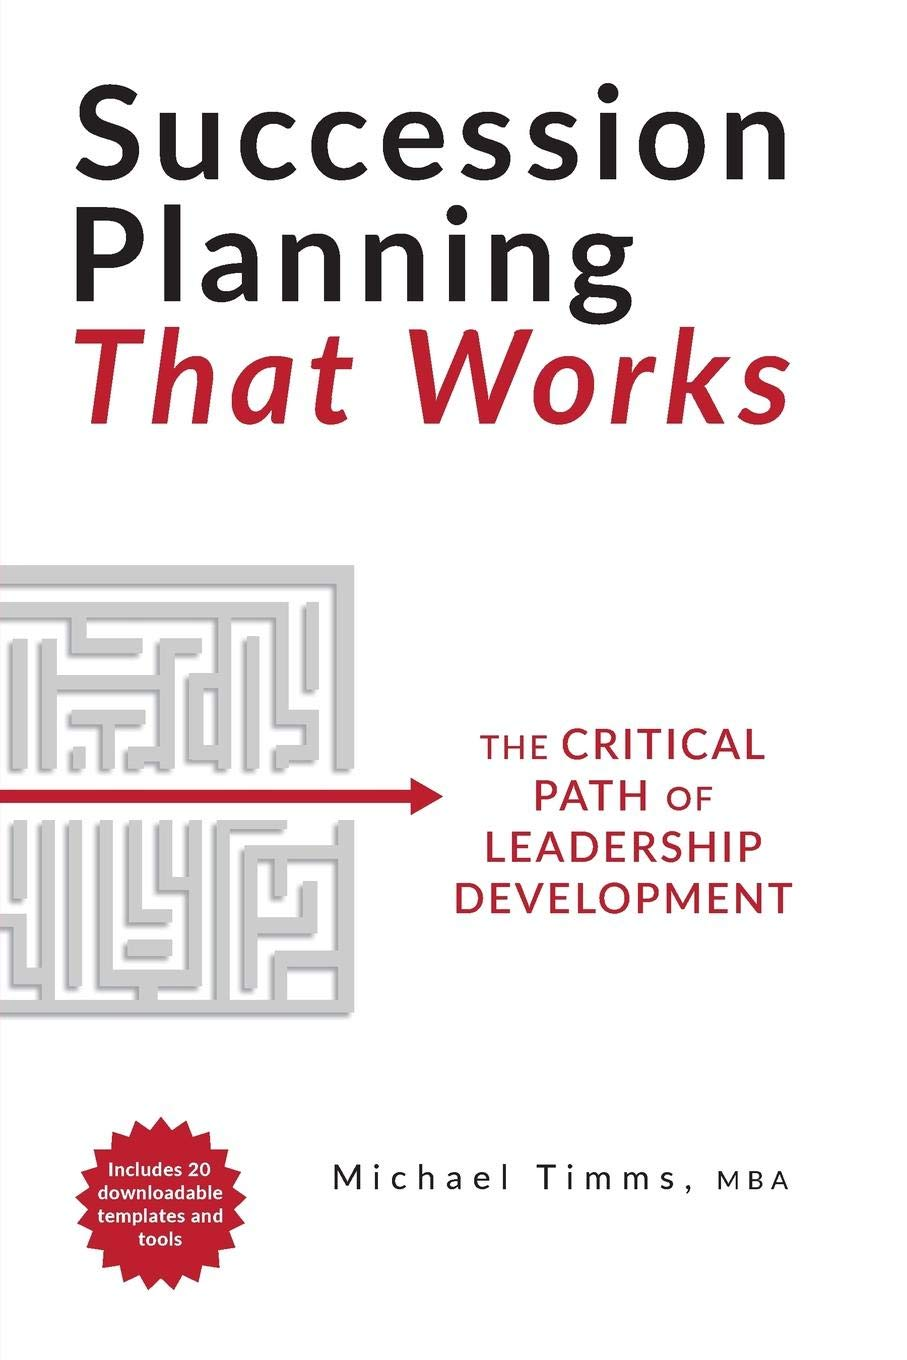 Succession Planning That Works: The Critical Path of Leadership Development PDF